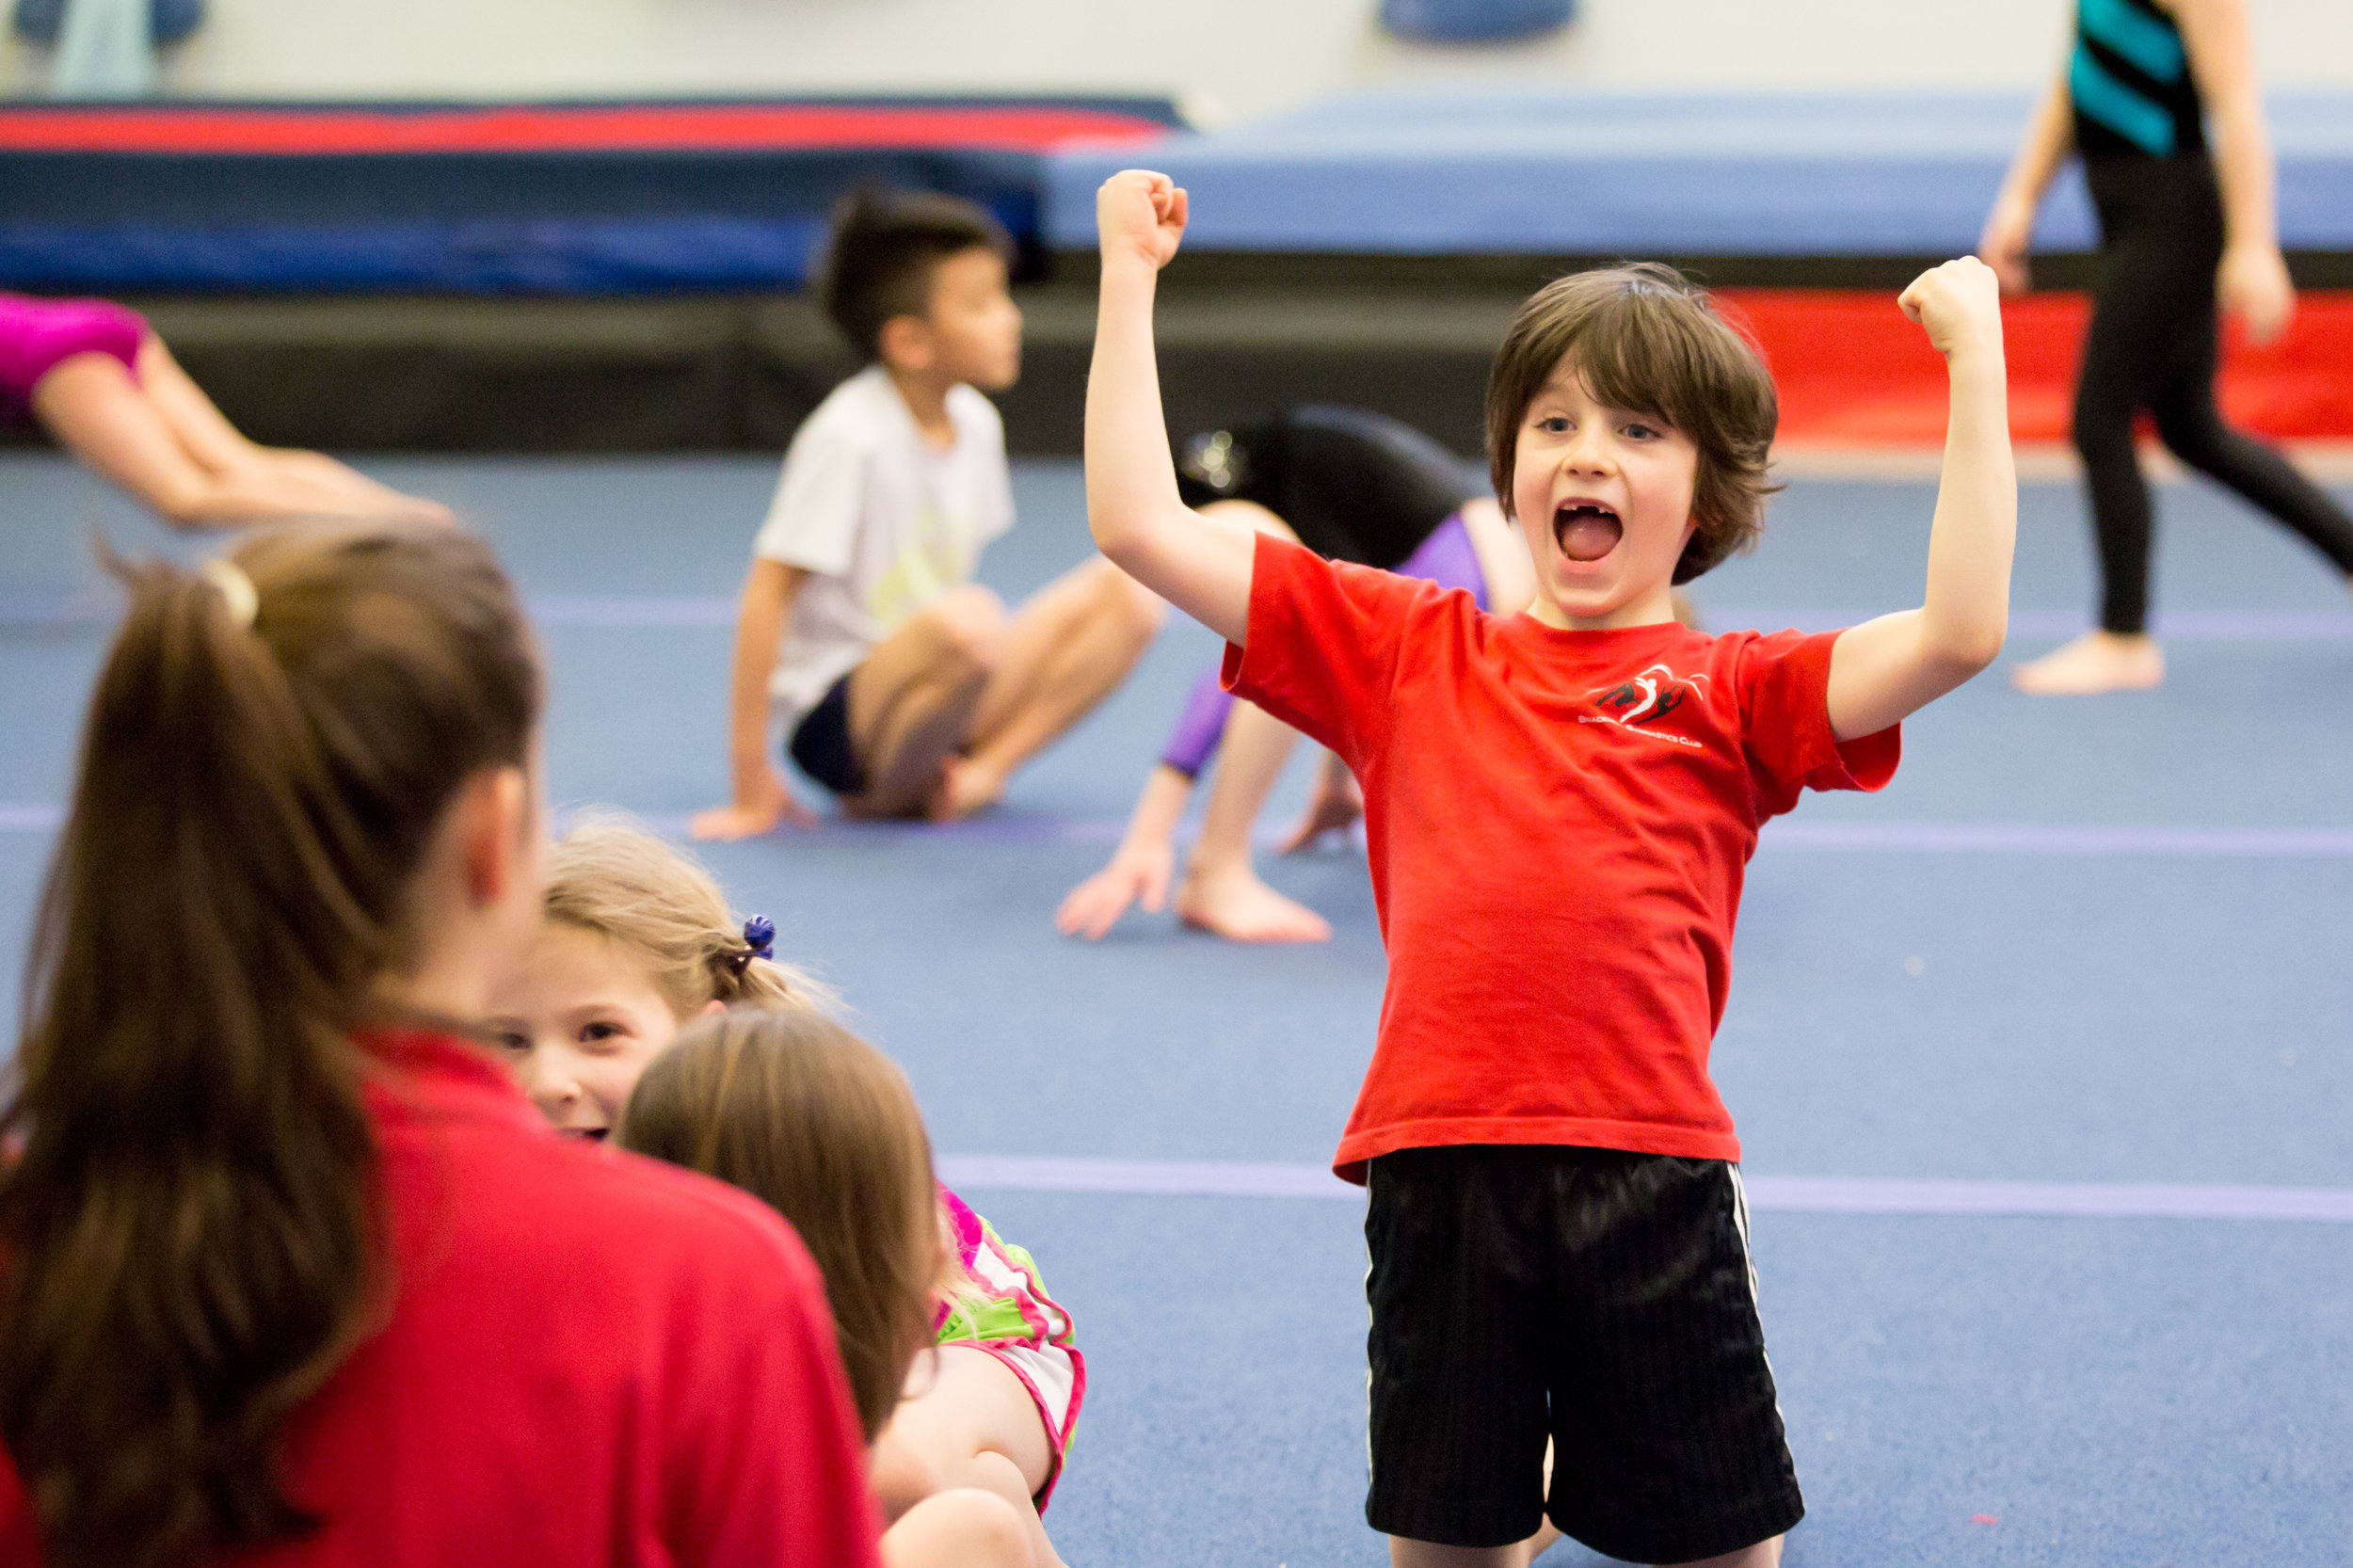 Foundation Gymnastics - Foundation Gymnastics classes are based around basic motor skill development and exploration of gymnastics movement. The classes operate on the Bracknell Gymnastics Club badge scheme covering Badges 1-5.